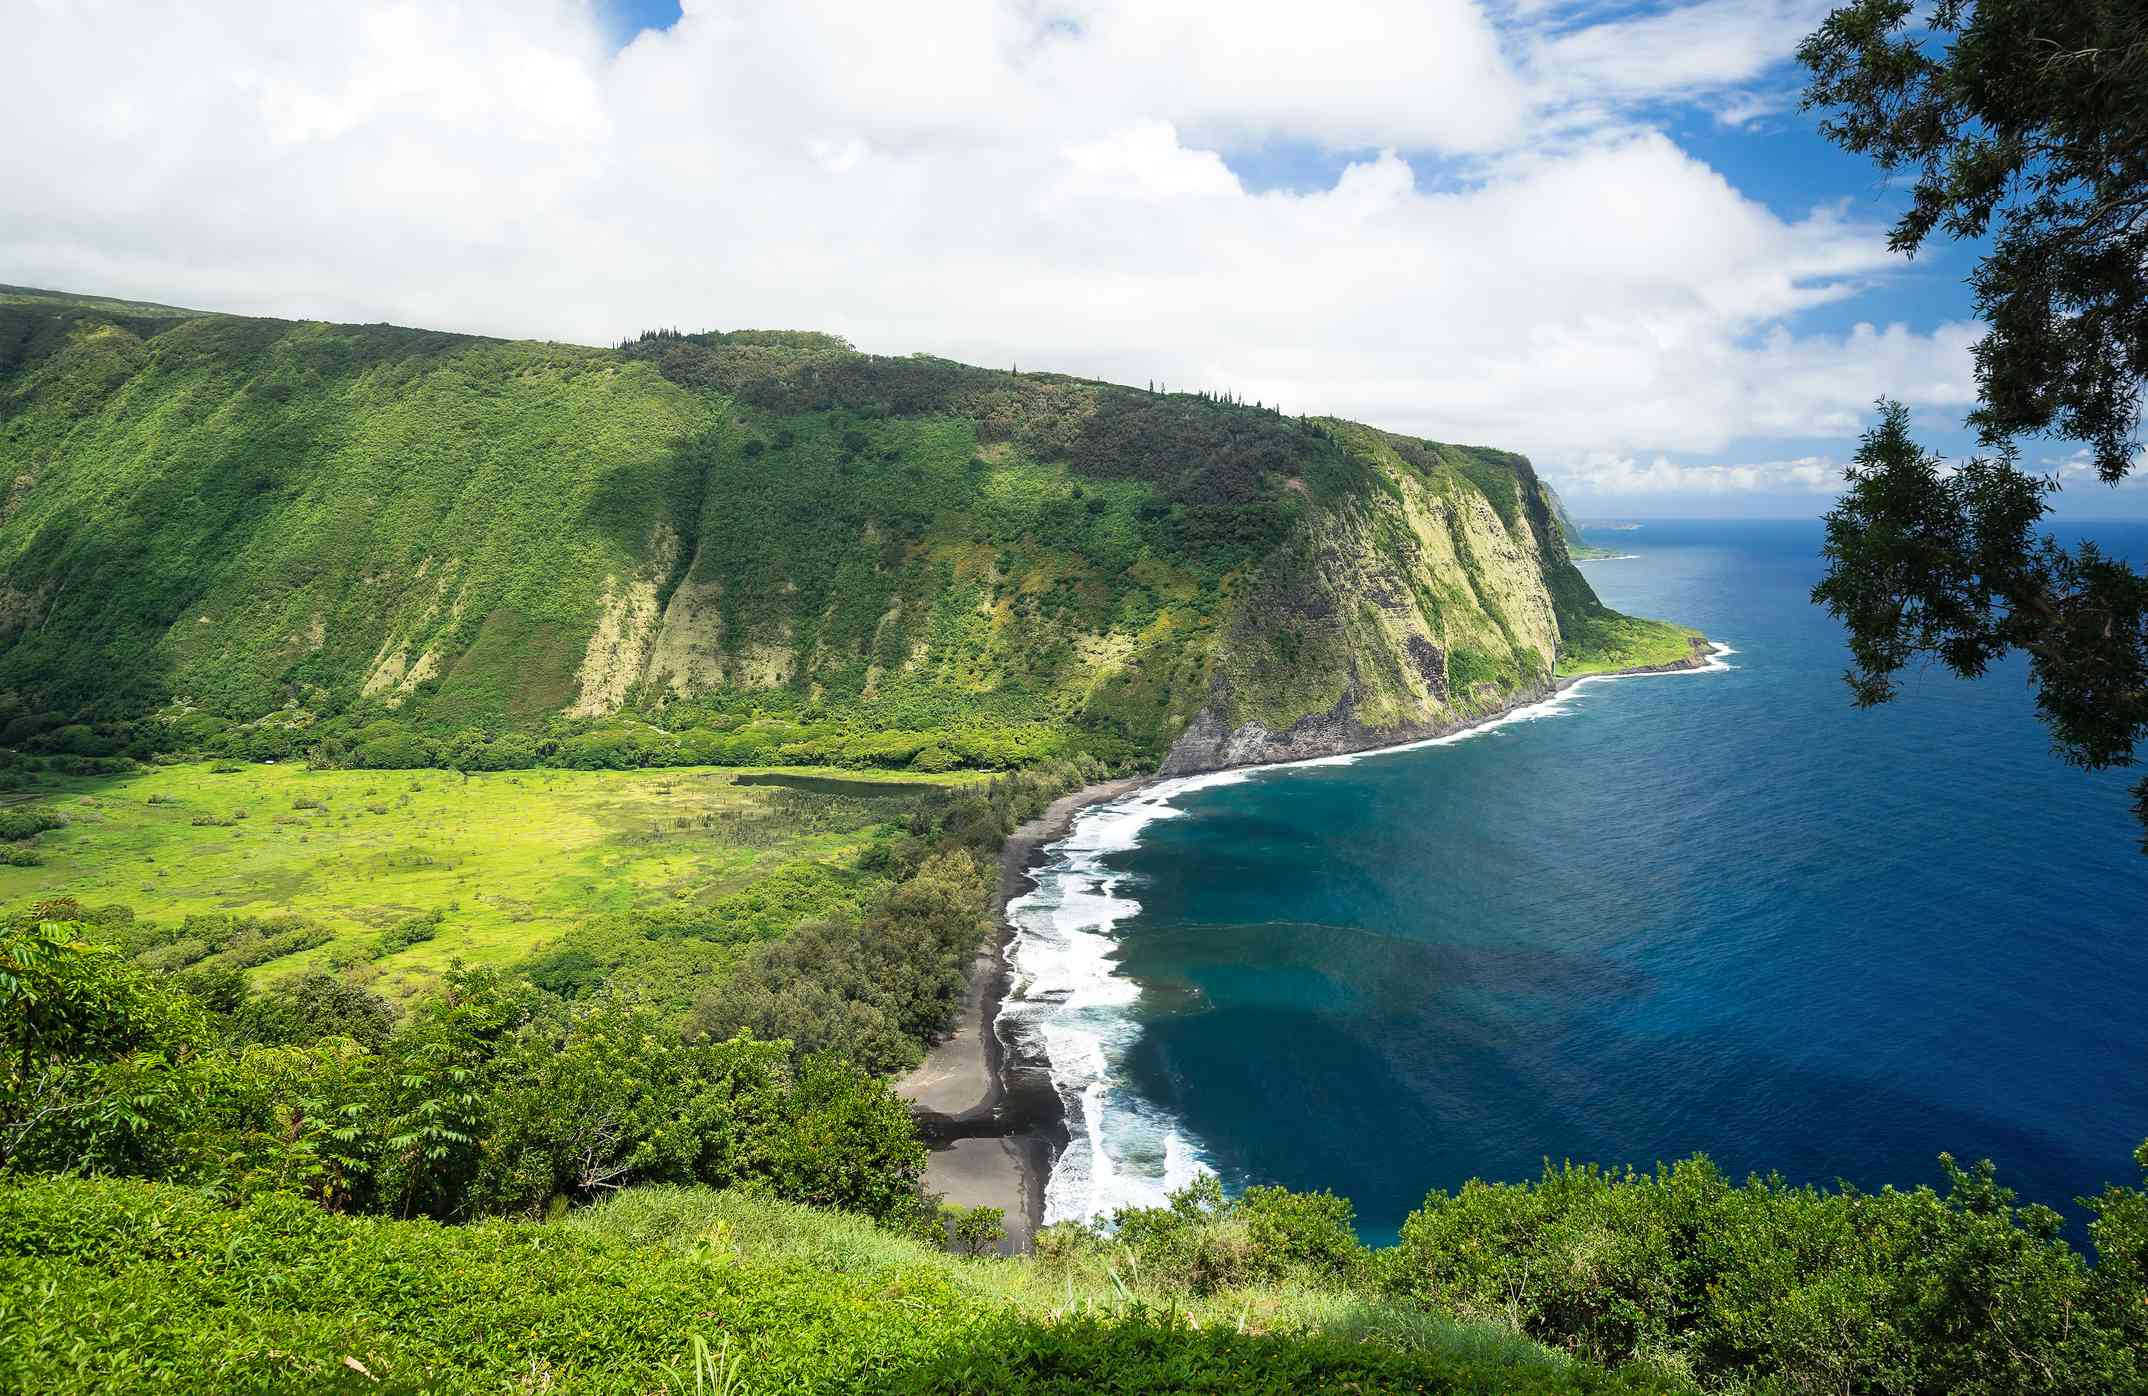 Waipio Valley Lookout view on the Big Island